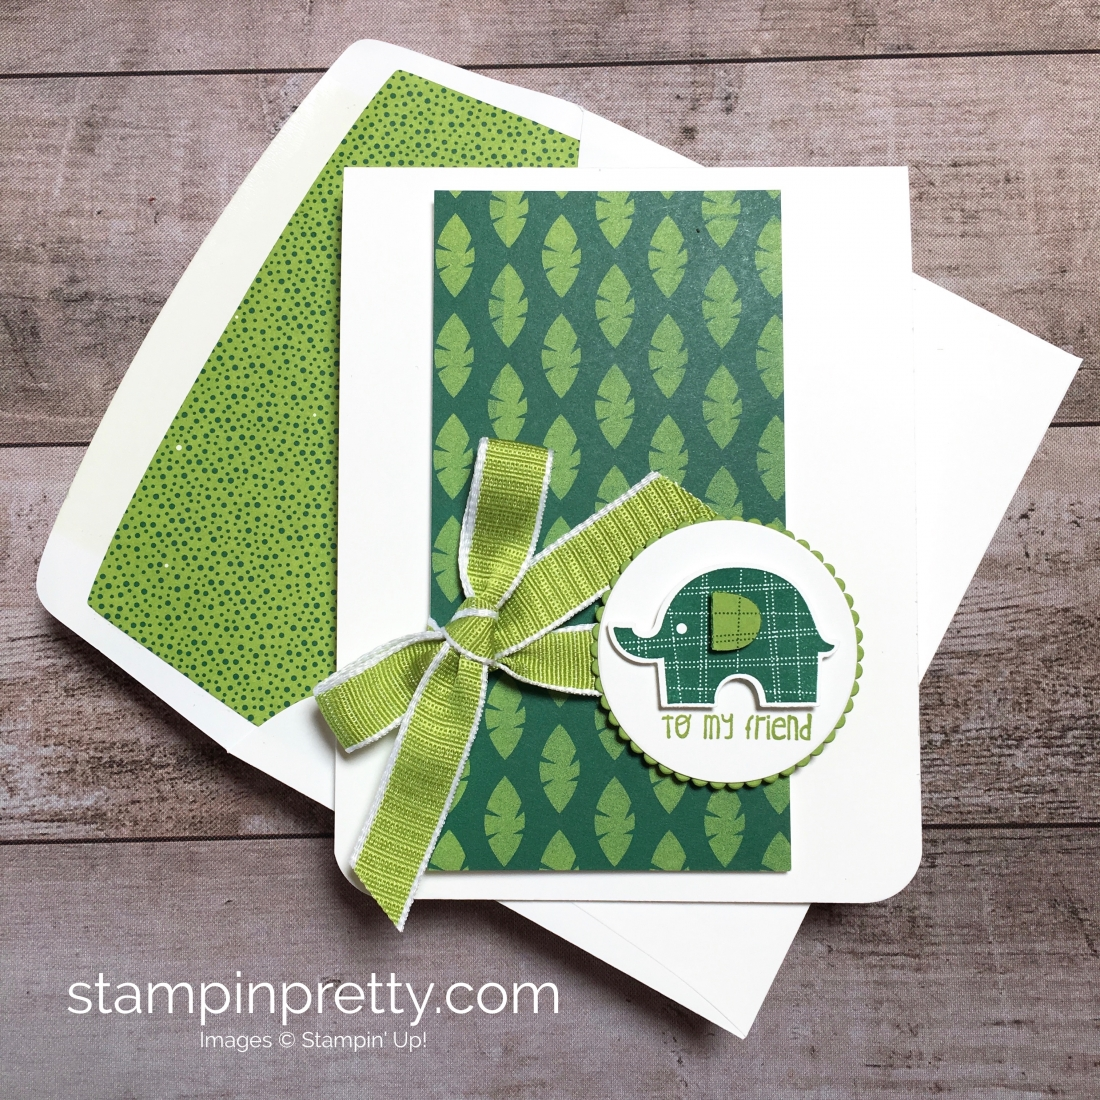 Create a simple friend card using Little Elephant and Elephant Builder Punch - Mary Fish StampinUp Idea